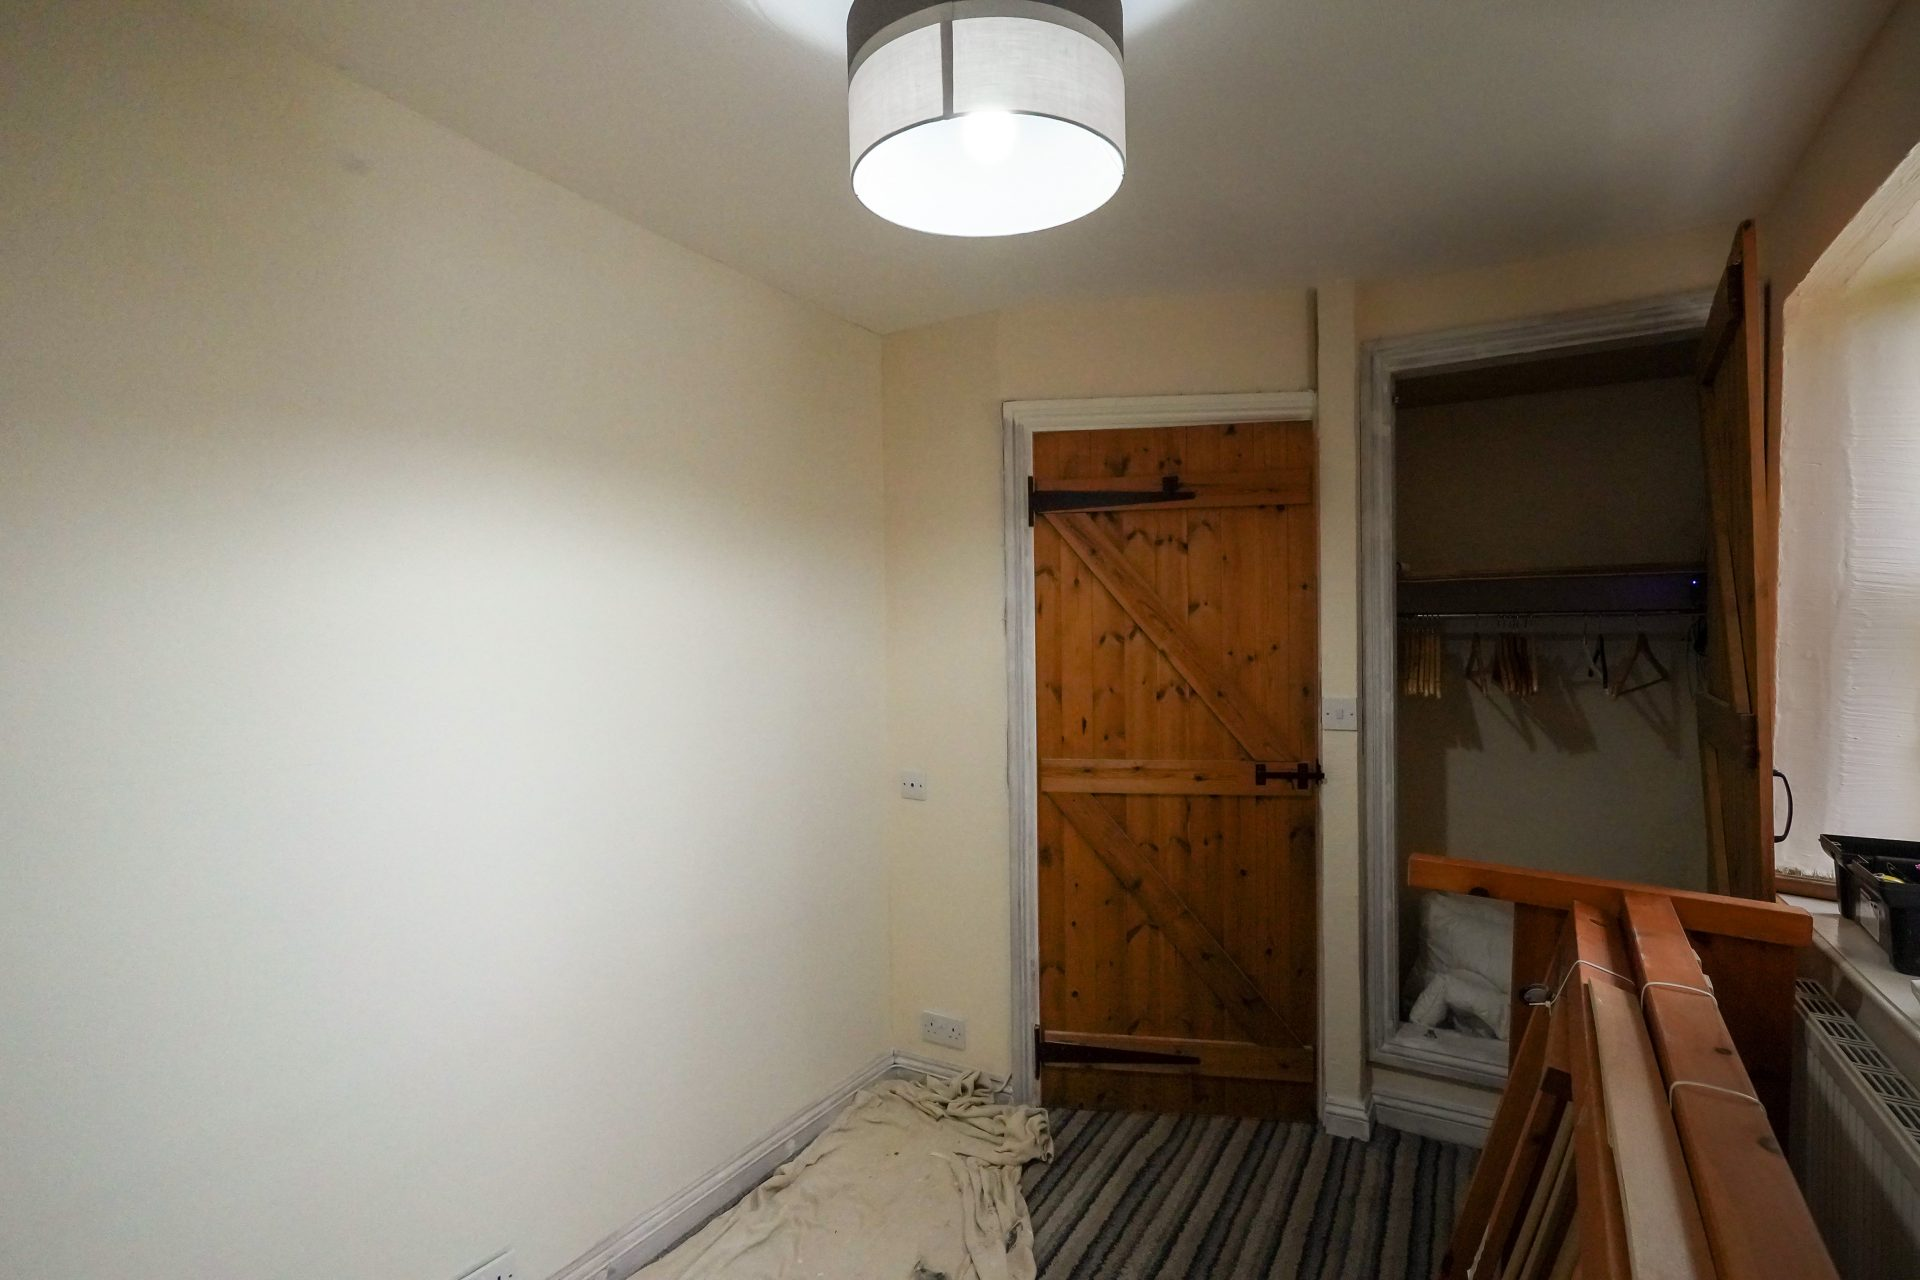 interior design before and after photo